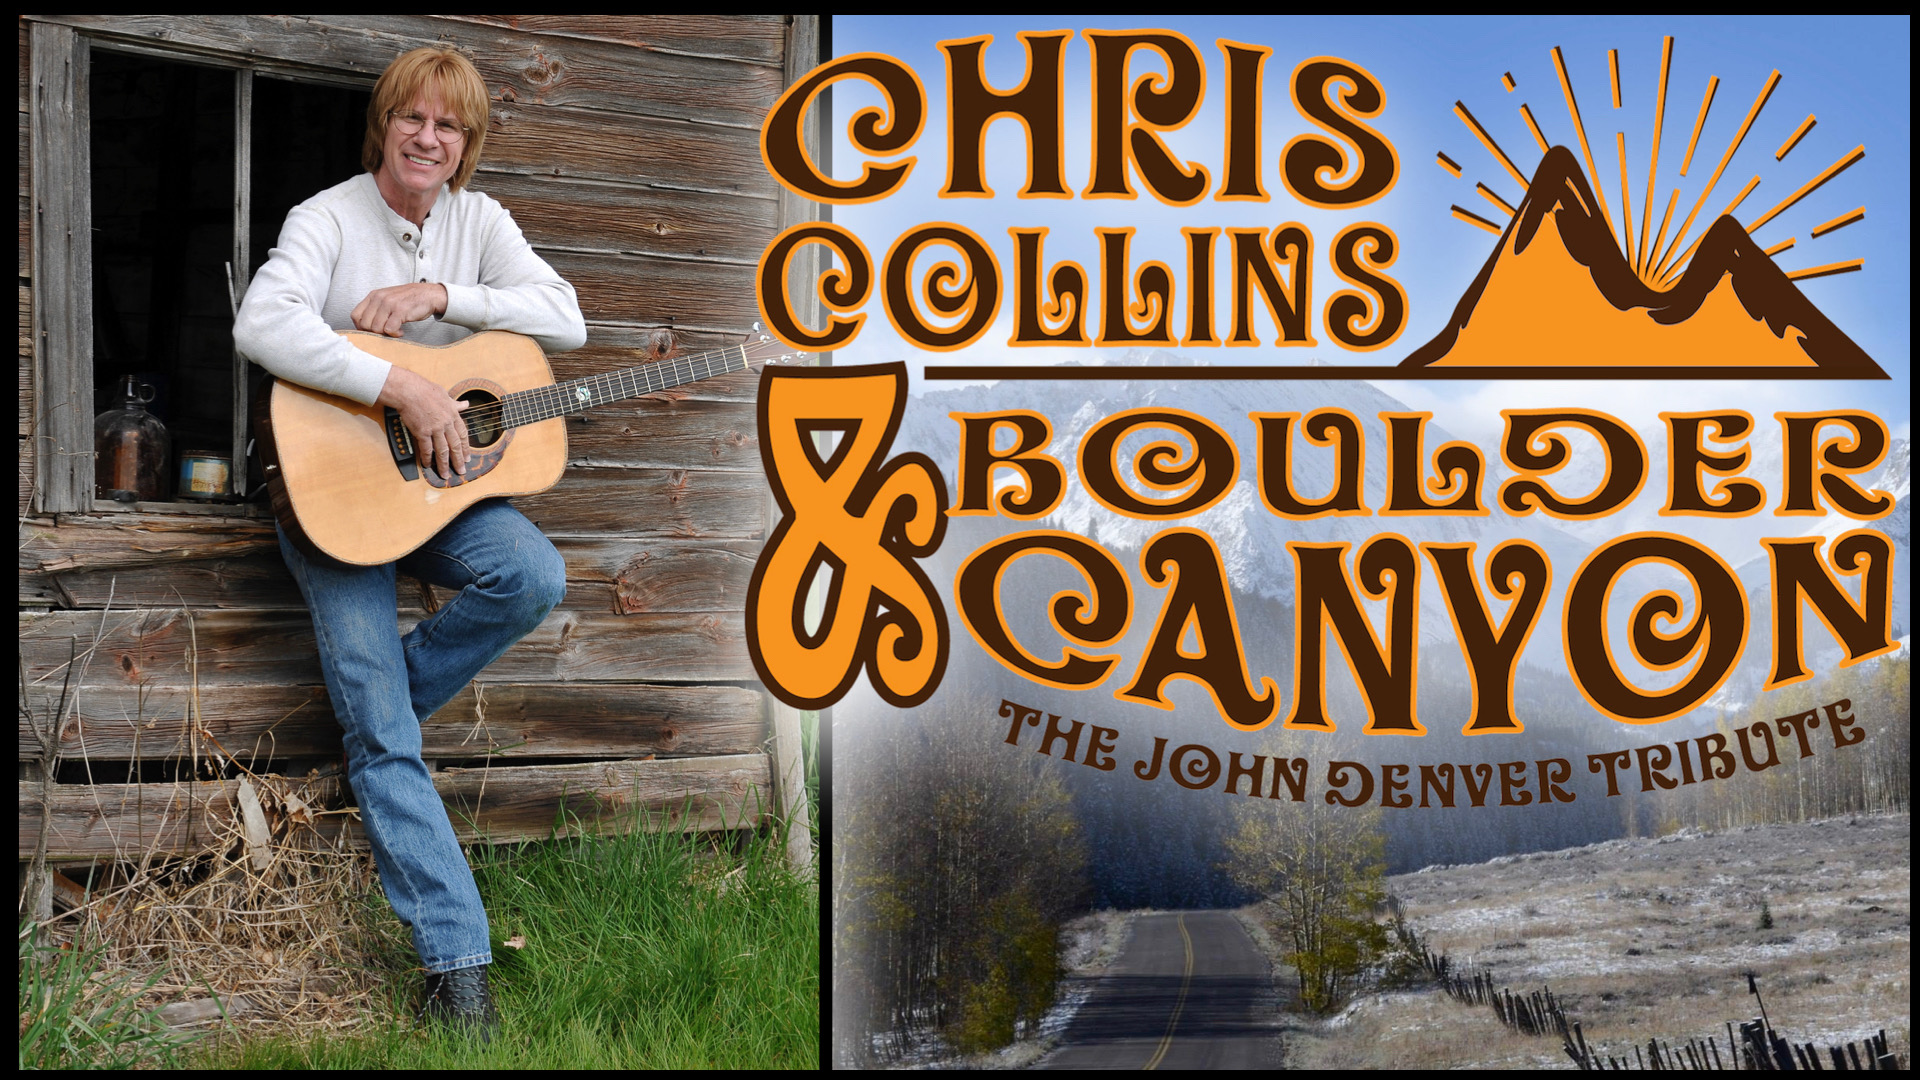 GET TICKETS: John Denver Tribute with Chris Collins and Boulder Canyon